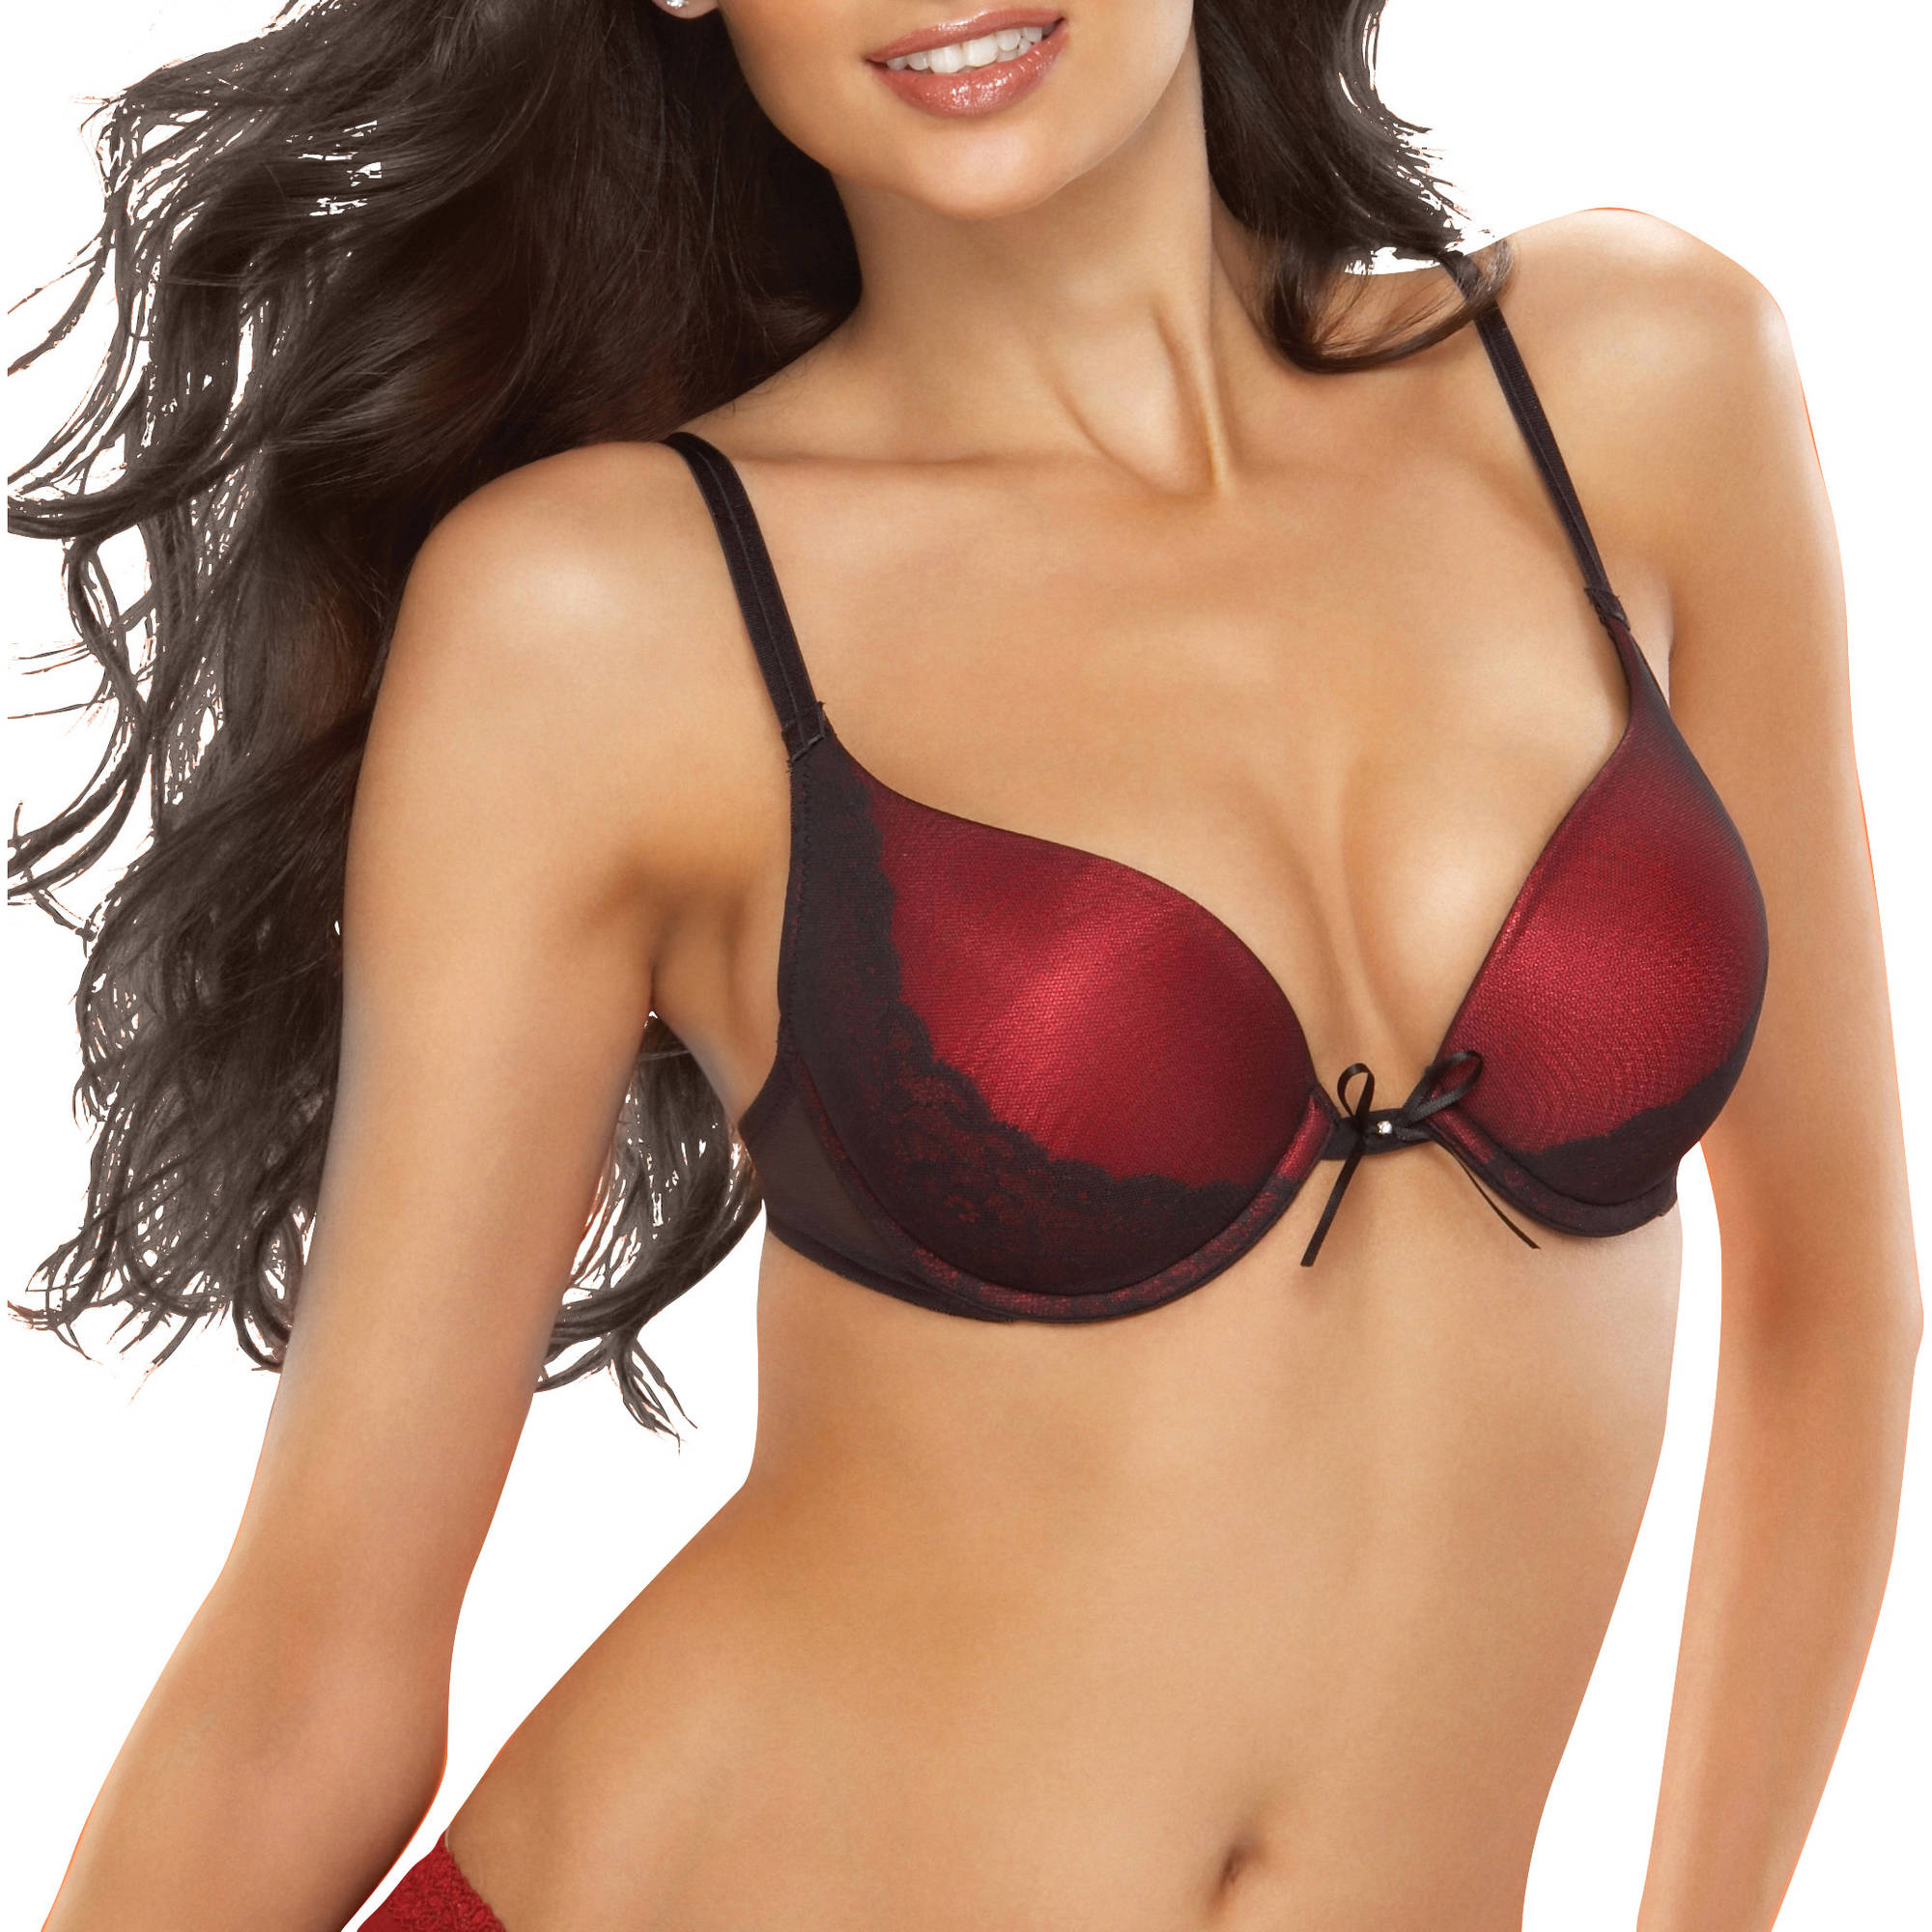 Vassarette Women's Lace Overlay Push-Up Level 3 Bra